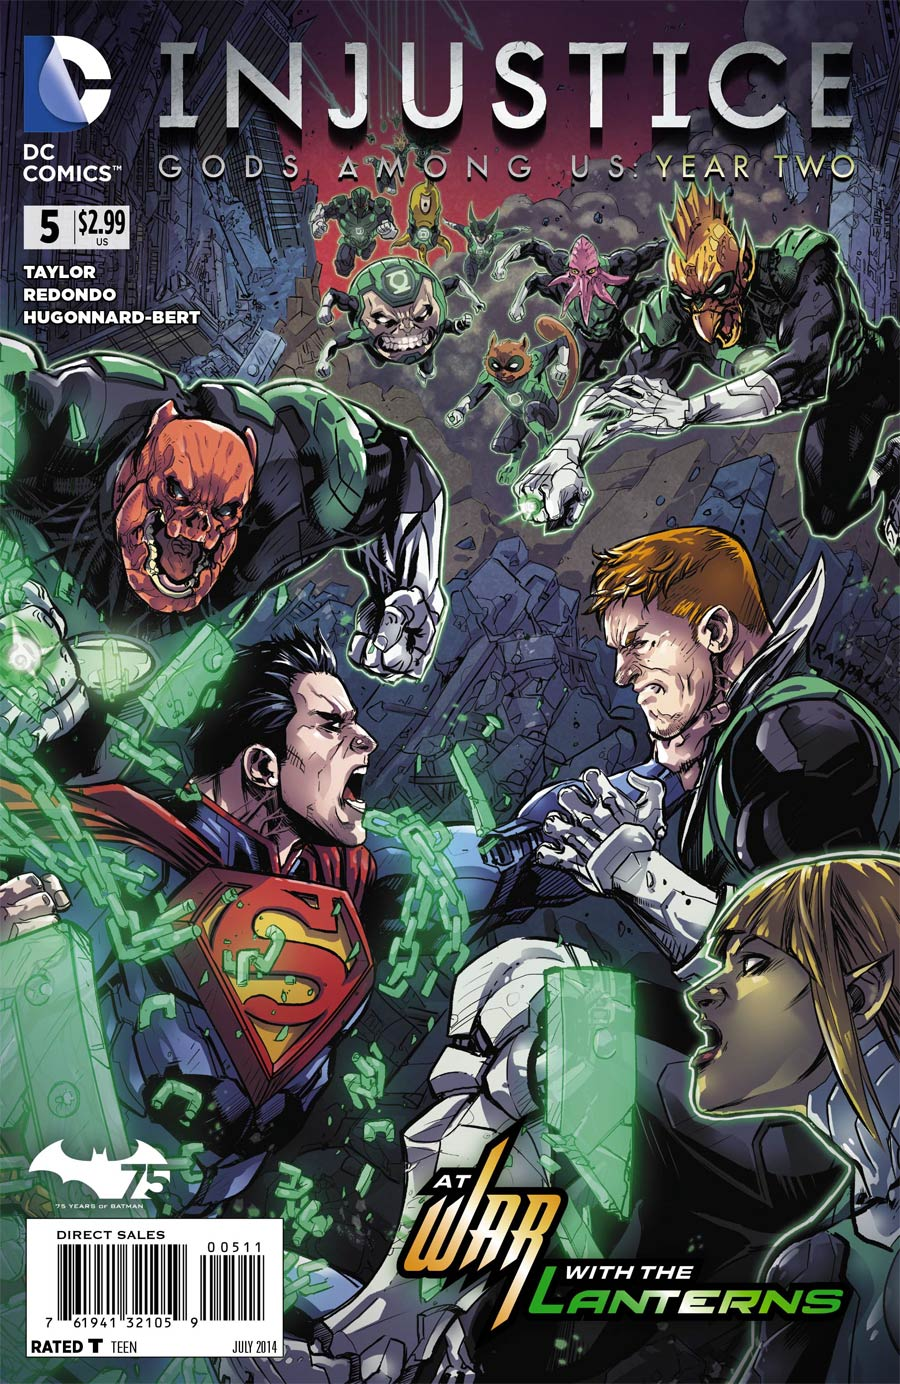 Injustice Gods Among Us Year Two #5